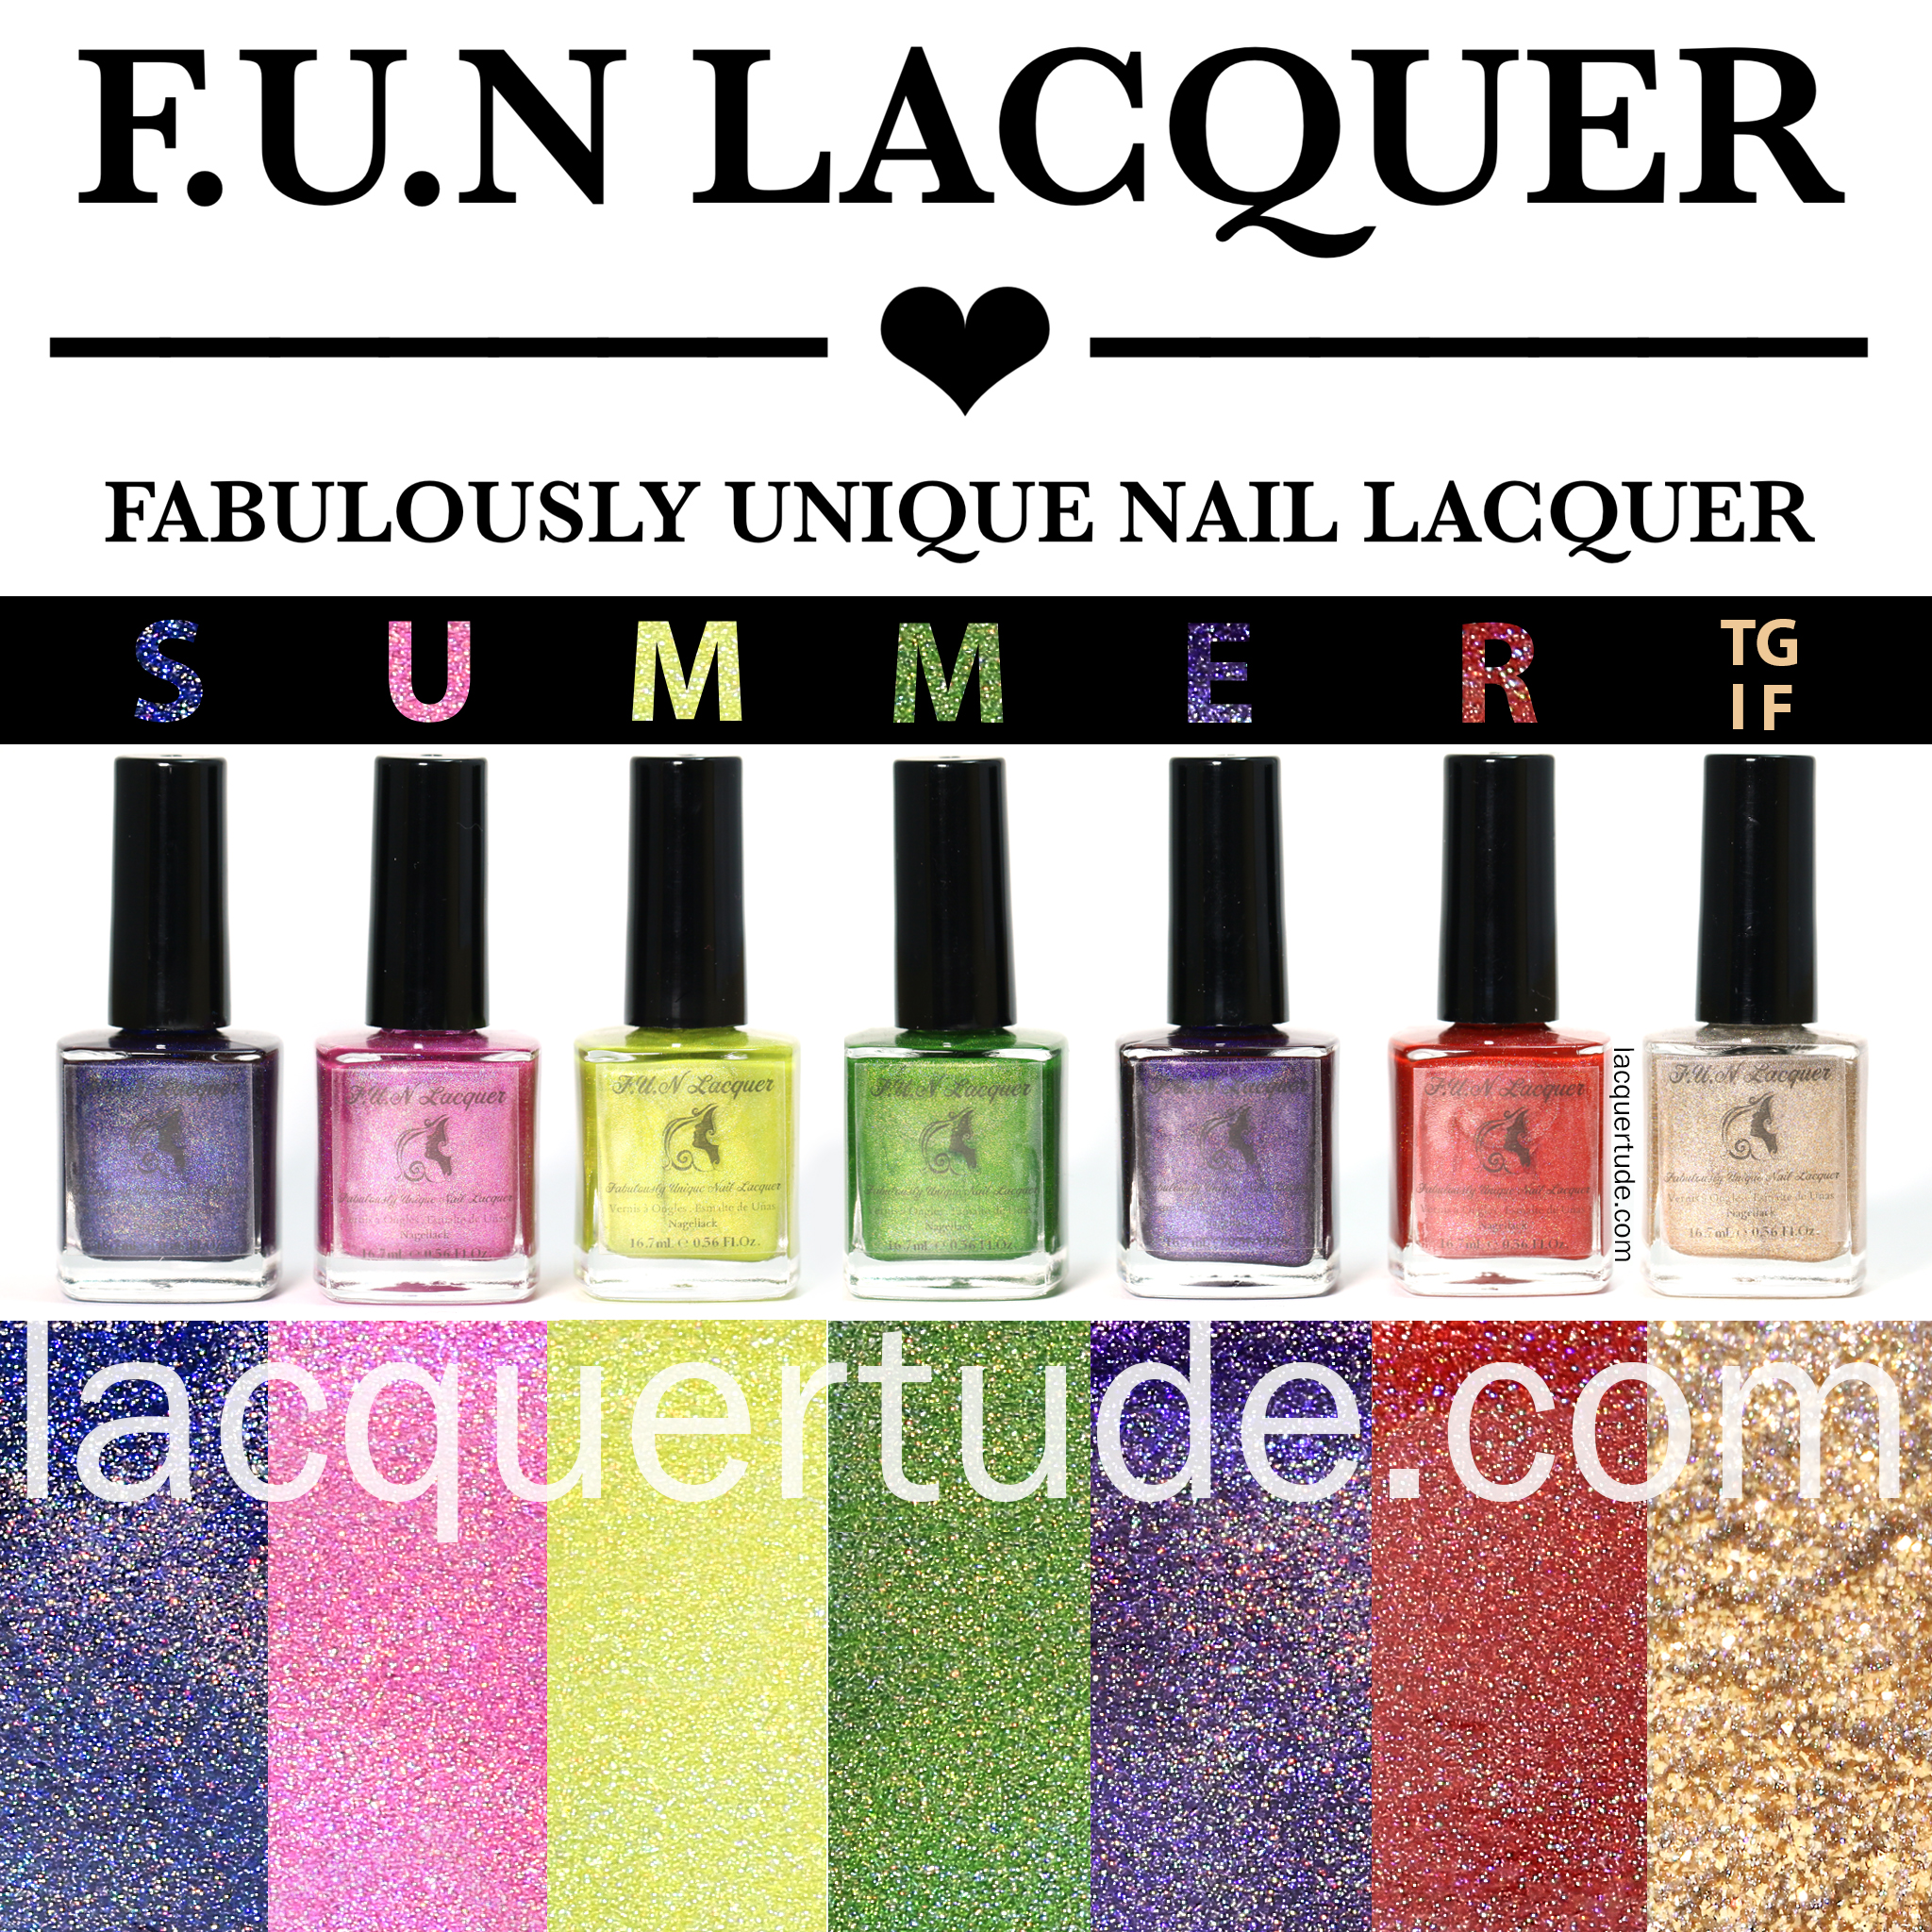 FUN-Lacquer-Summer-2014-Bottles